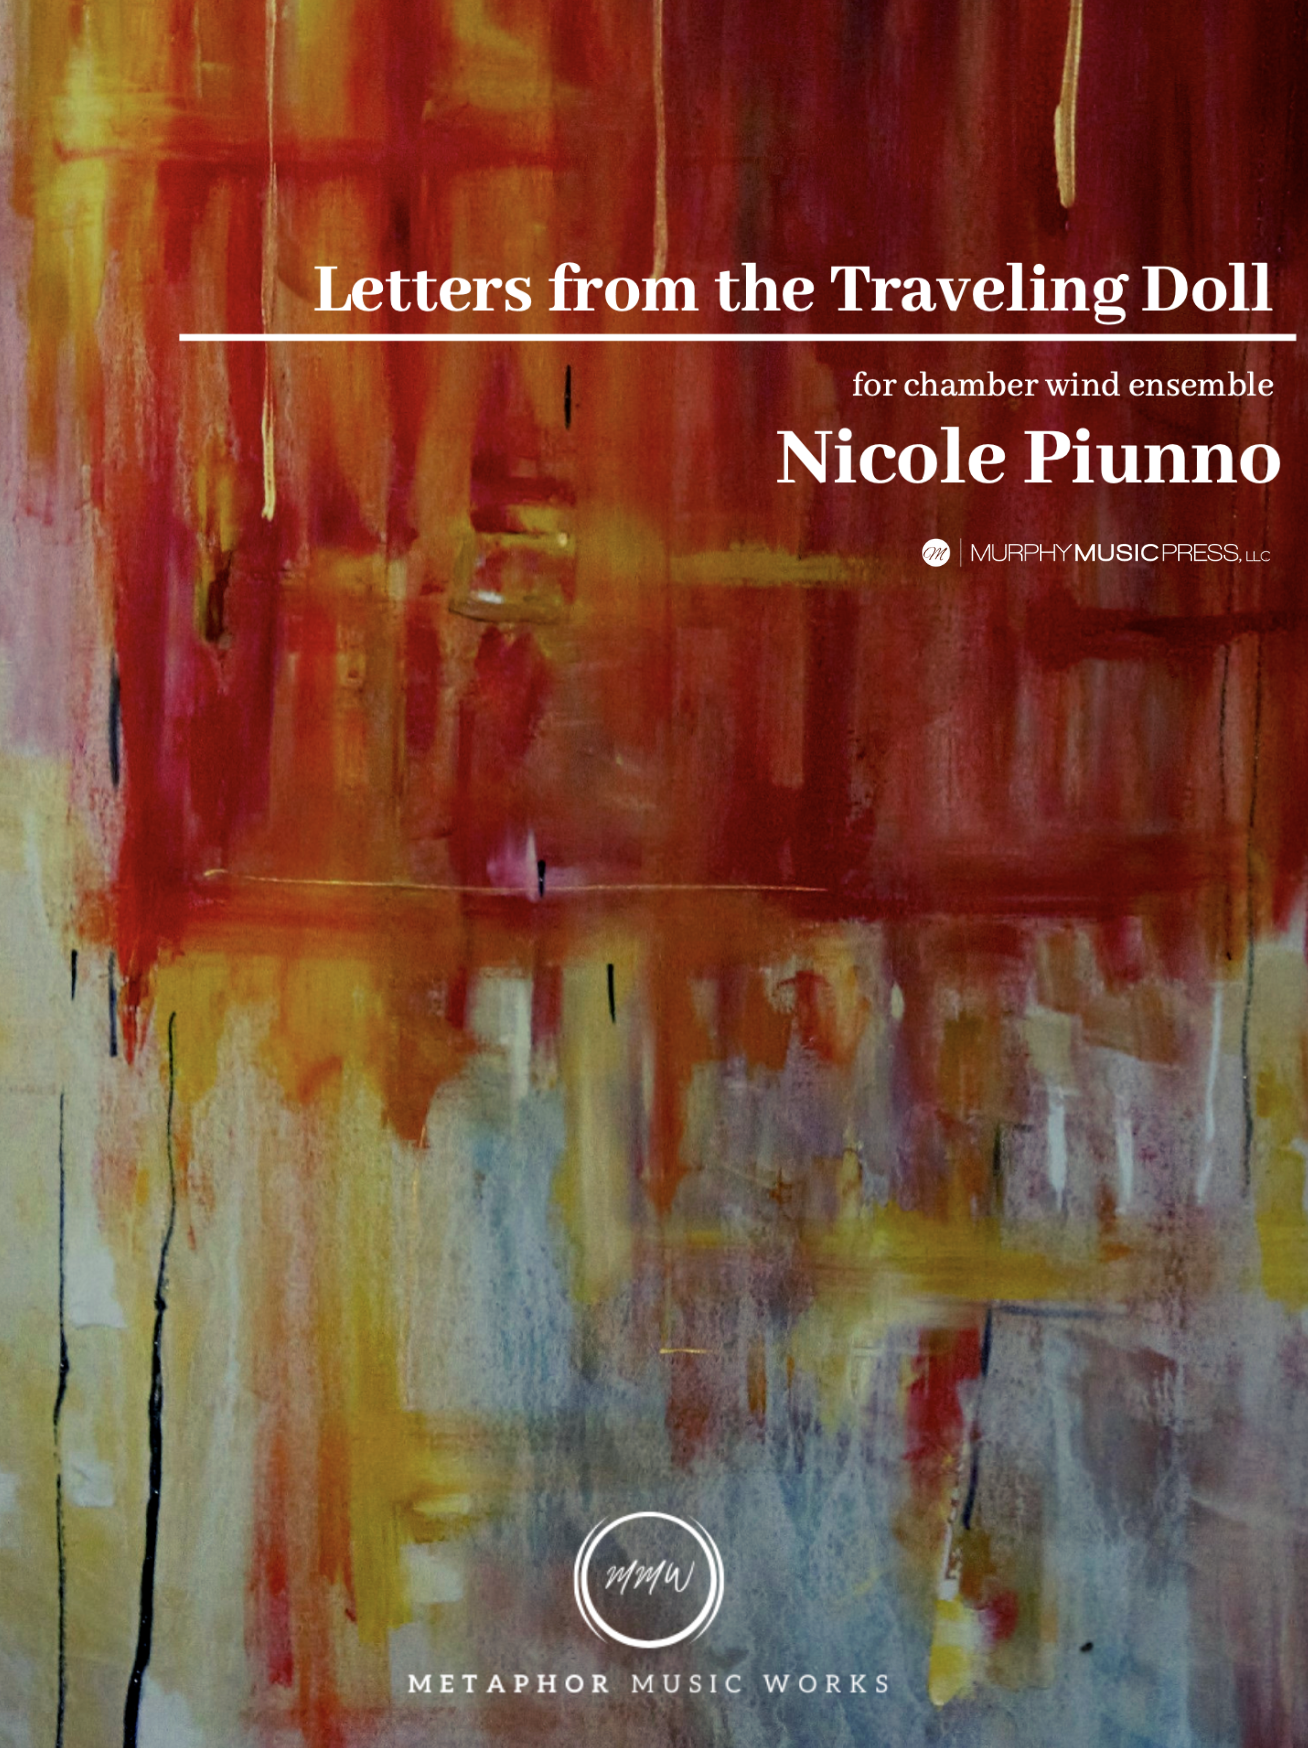 Letters From The Traveling Doll by Nicole Piunno